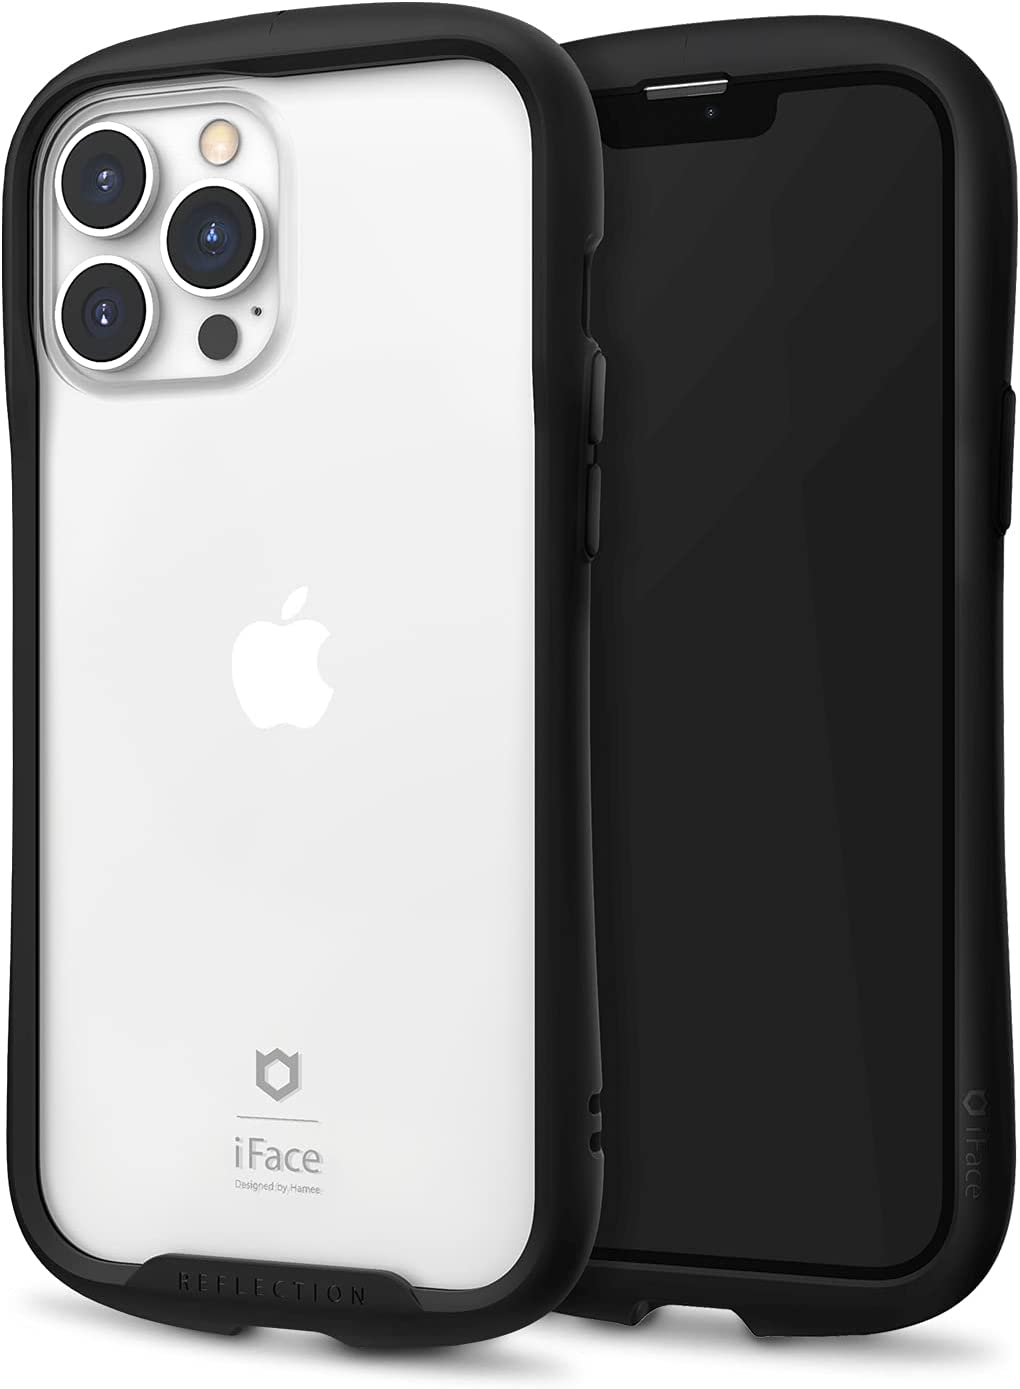 iFace Reflection Designed for iPhone 13 Pro Max (6.7